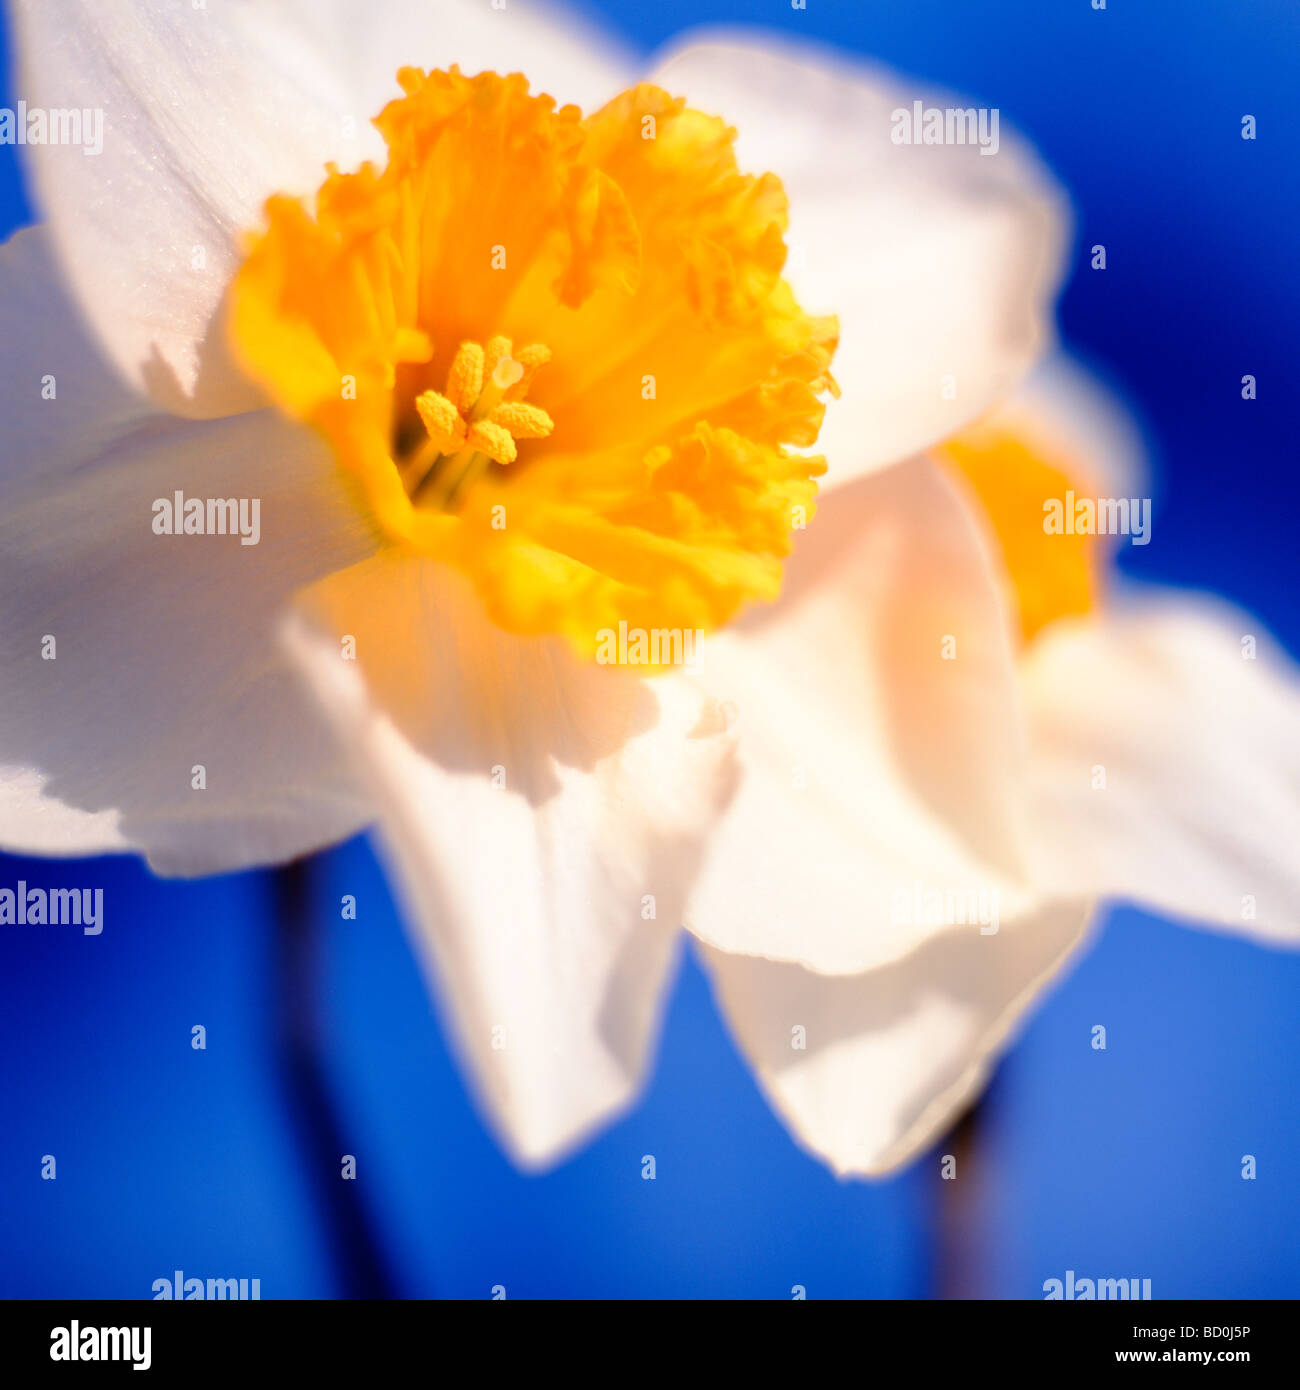 beautiful spring daffodils the epitome of spring fine art photography Jane Ann Butler Photography JABP289 - Stock Image